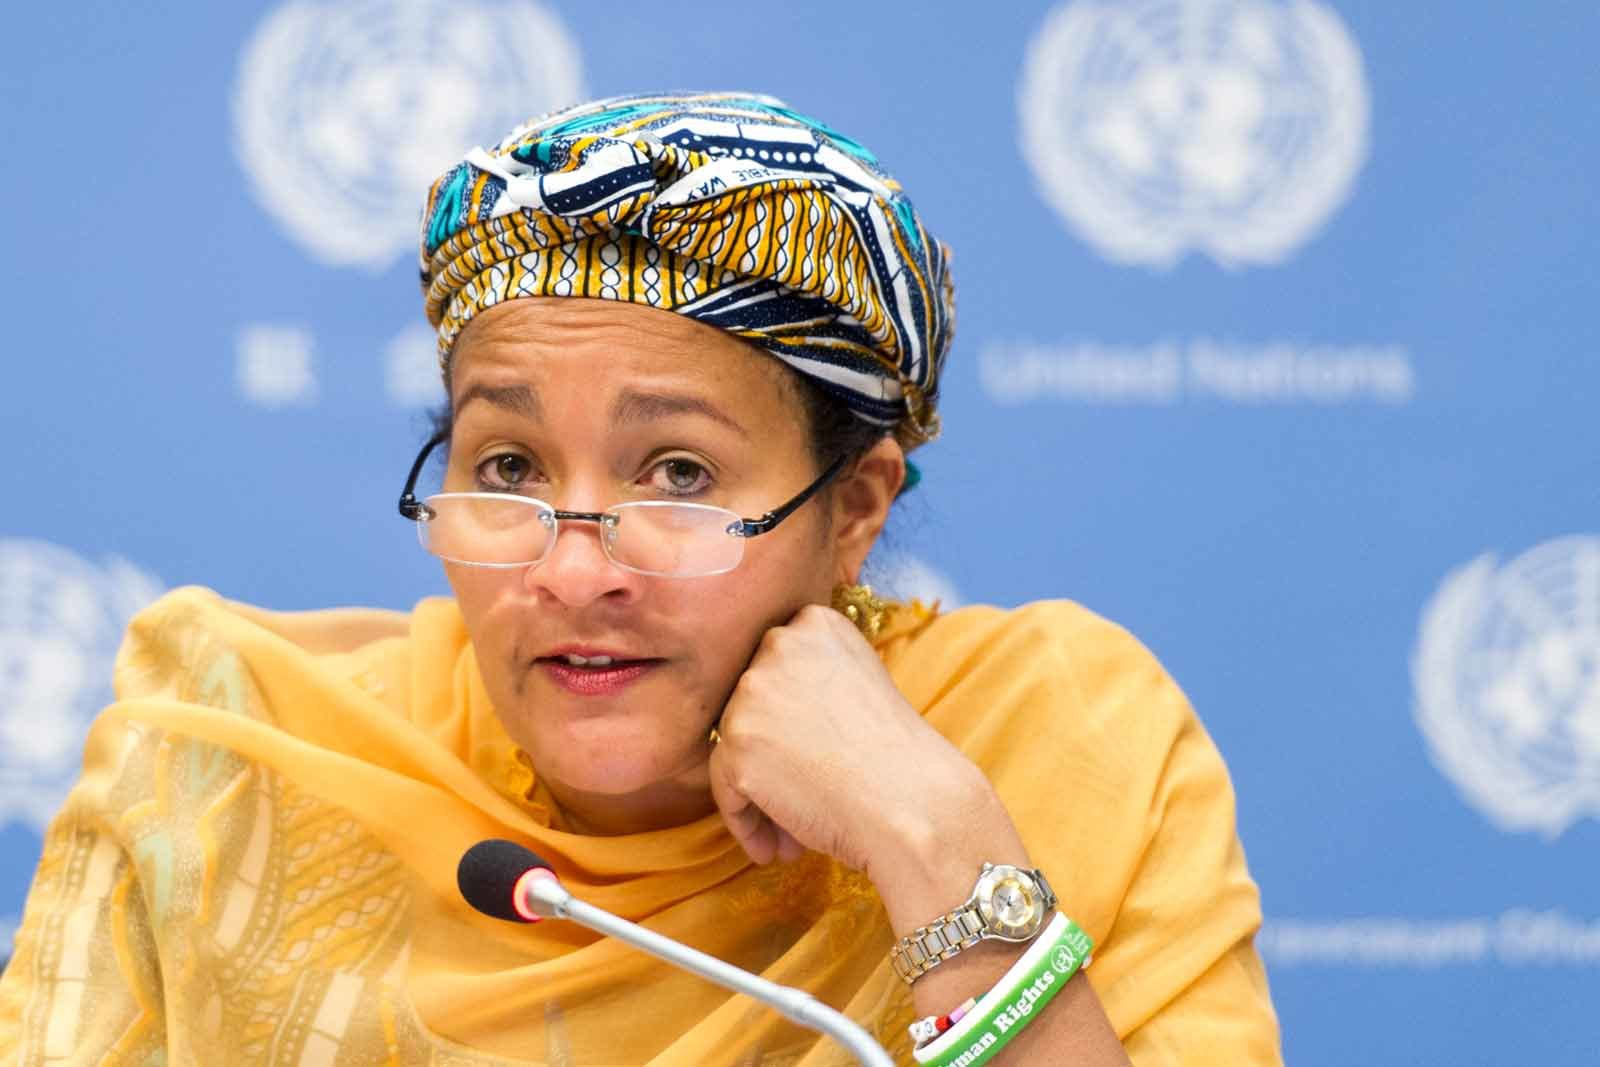 Video: Buhari's Former Minister, Un Deputy Secretary General, Amina Mohammed In $300m Illegally Shipped Wood Scandal